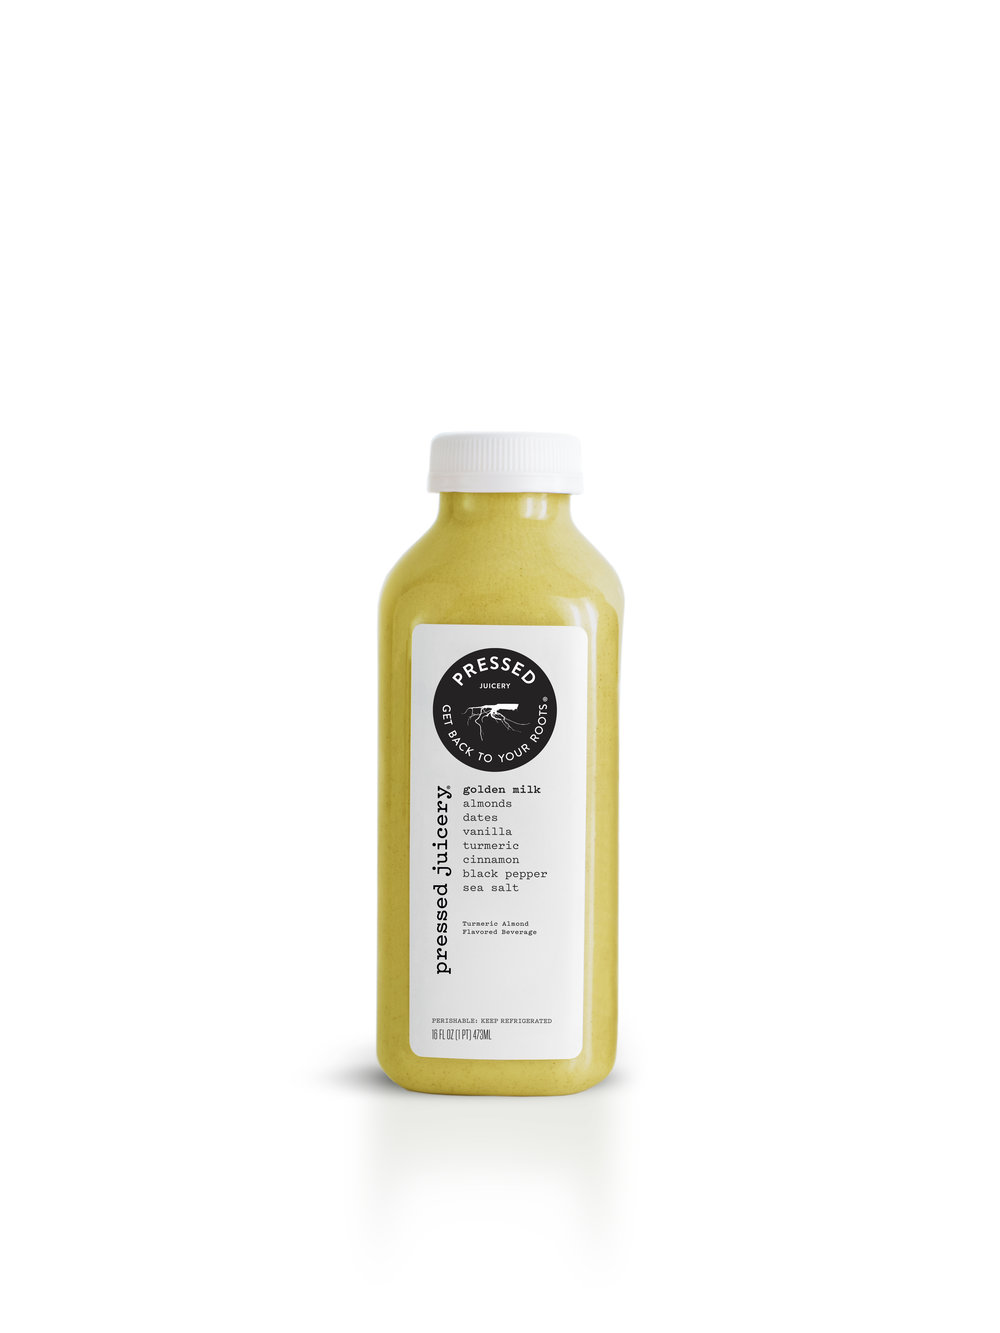 Pressed Juicery, $9.99